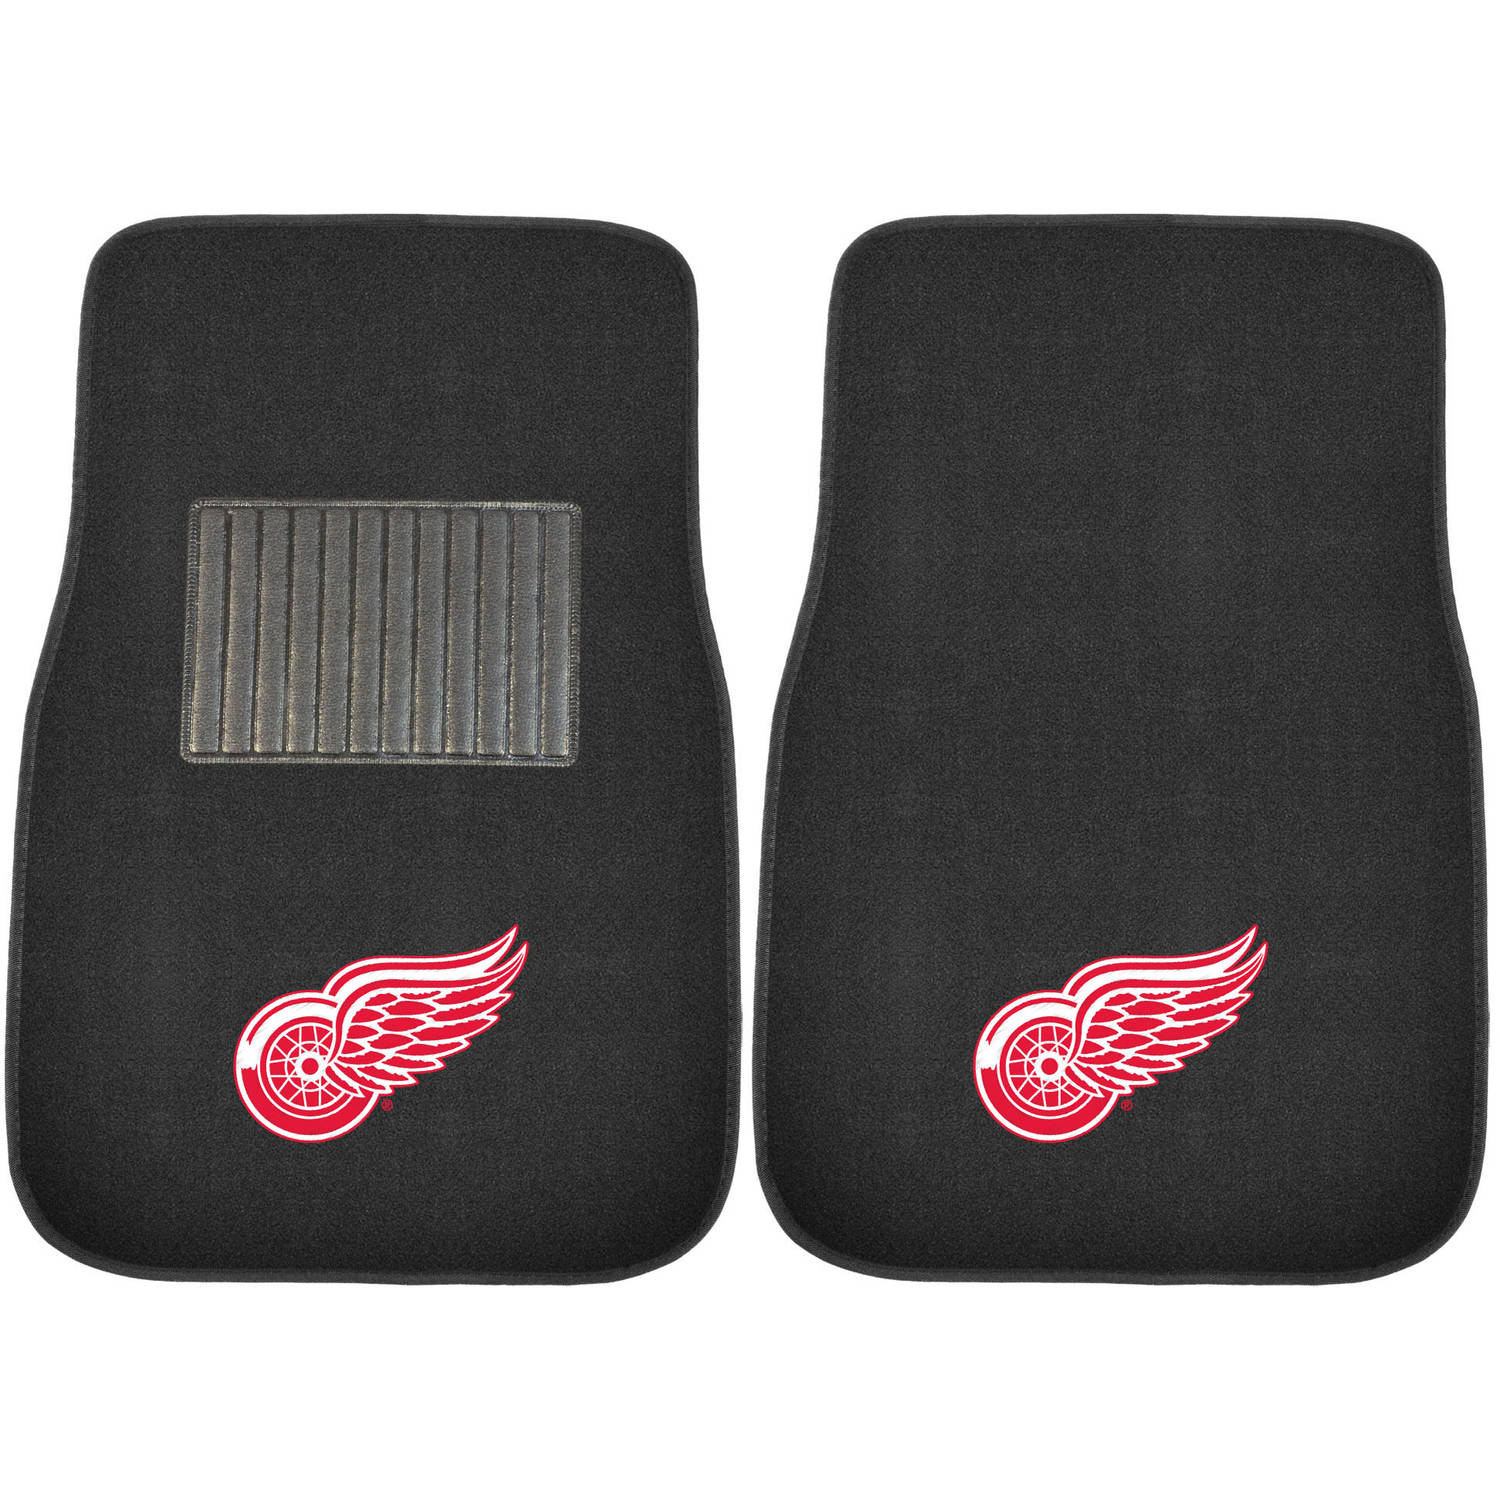 NHL Detroit Red Wings Embroidered Car Mats